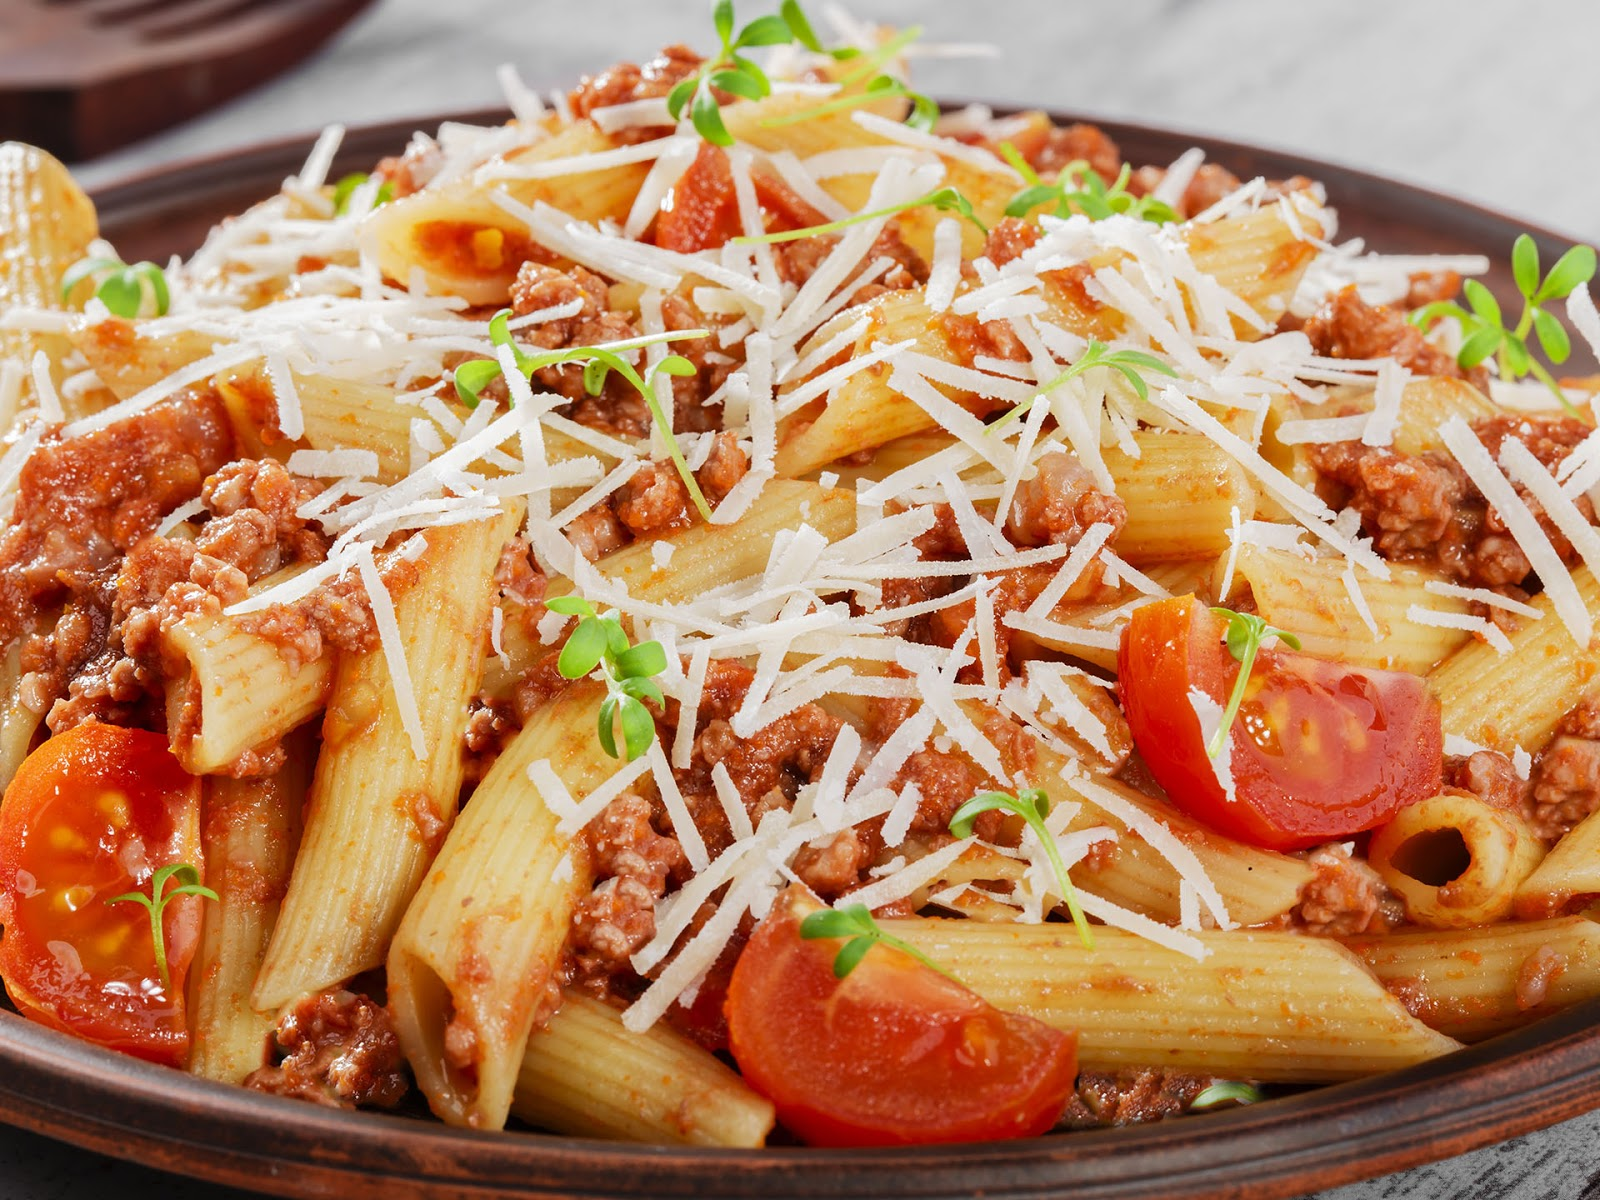 Pasta is not a whole food as it is typically made from processed wheat and eggs.